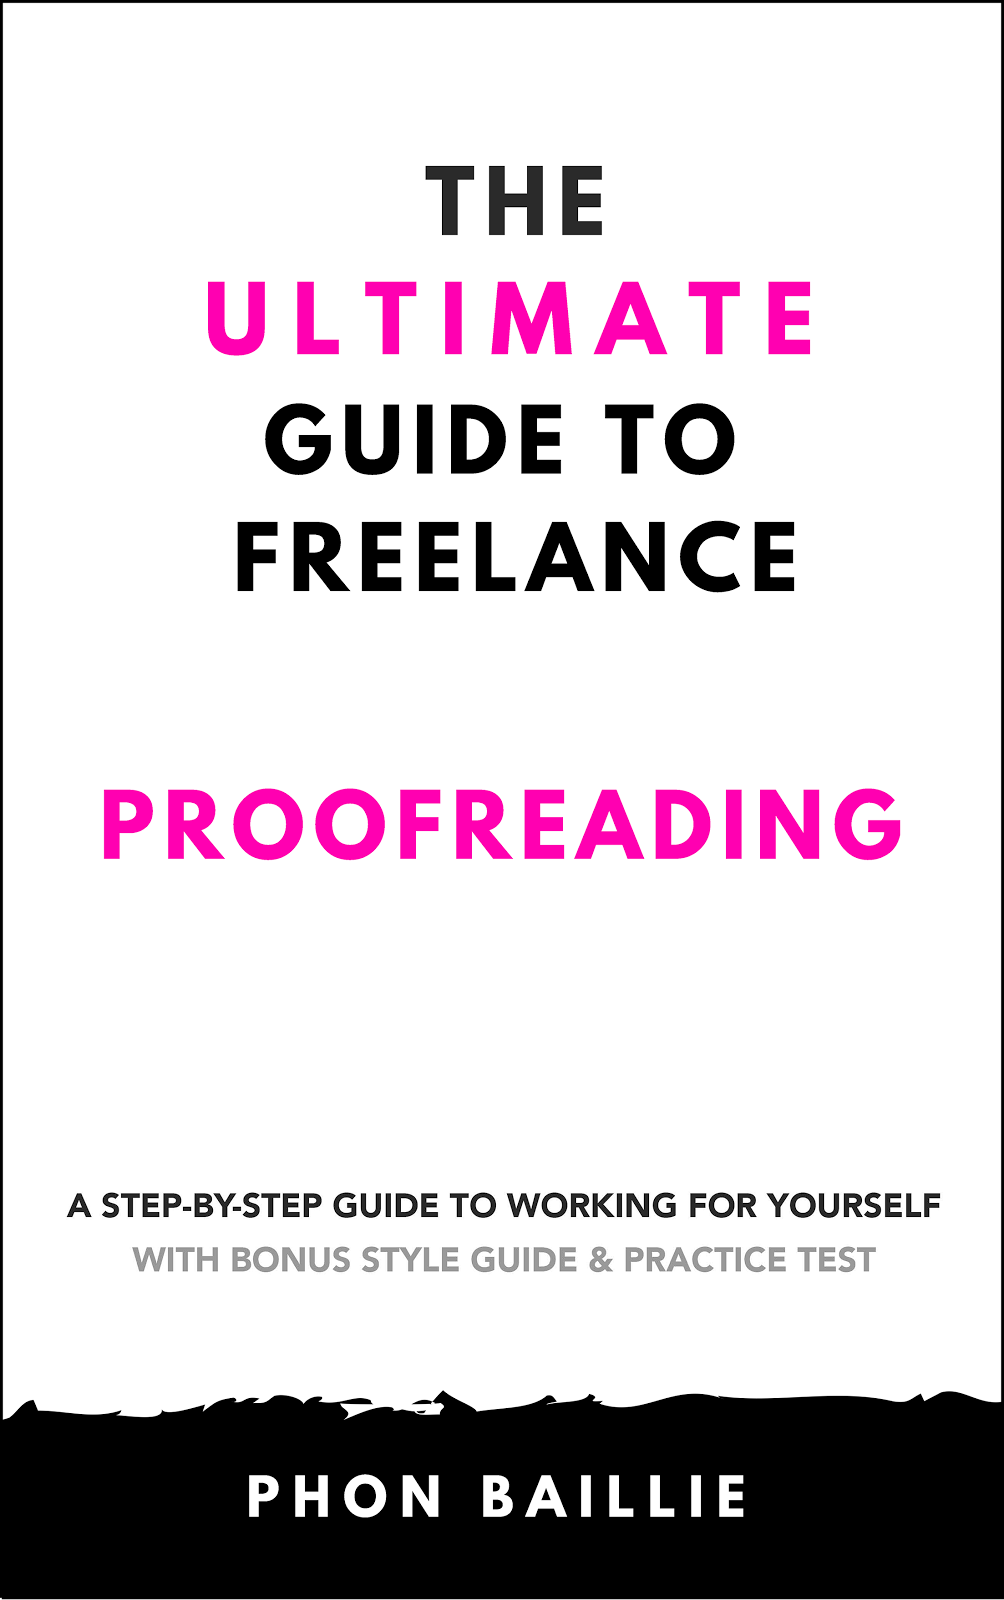 The Ultimate Guide to Freelance Proofreading